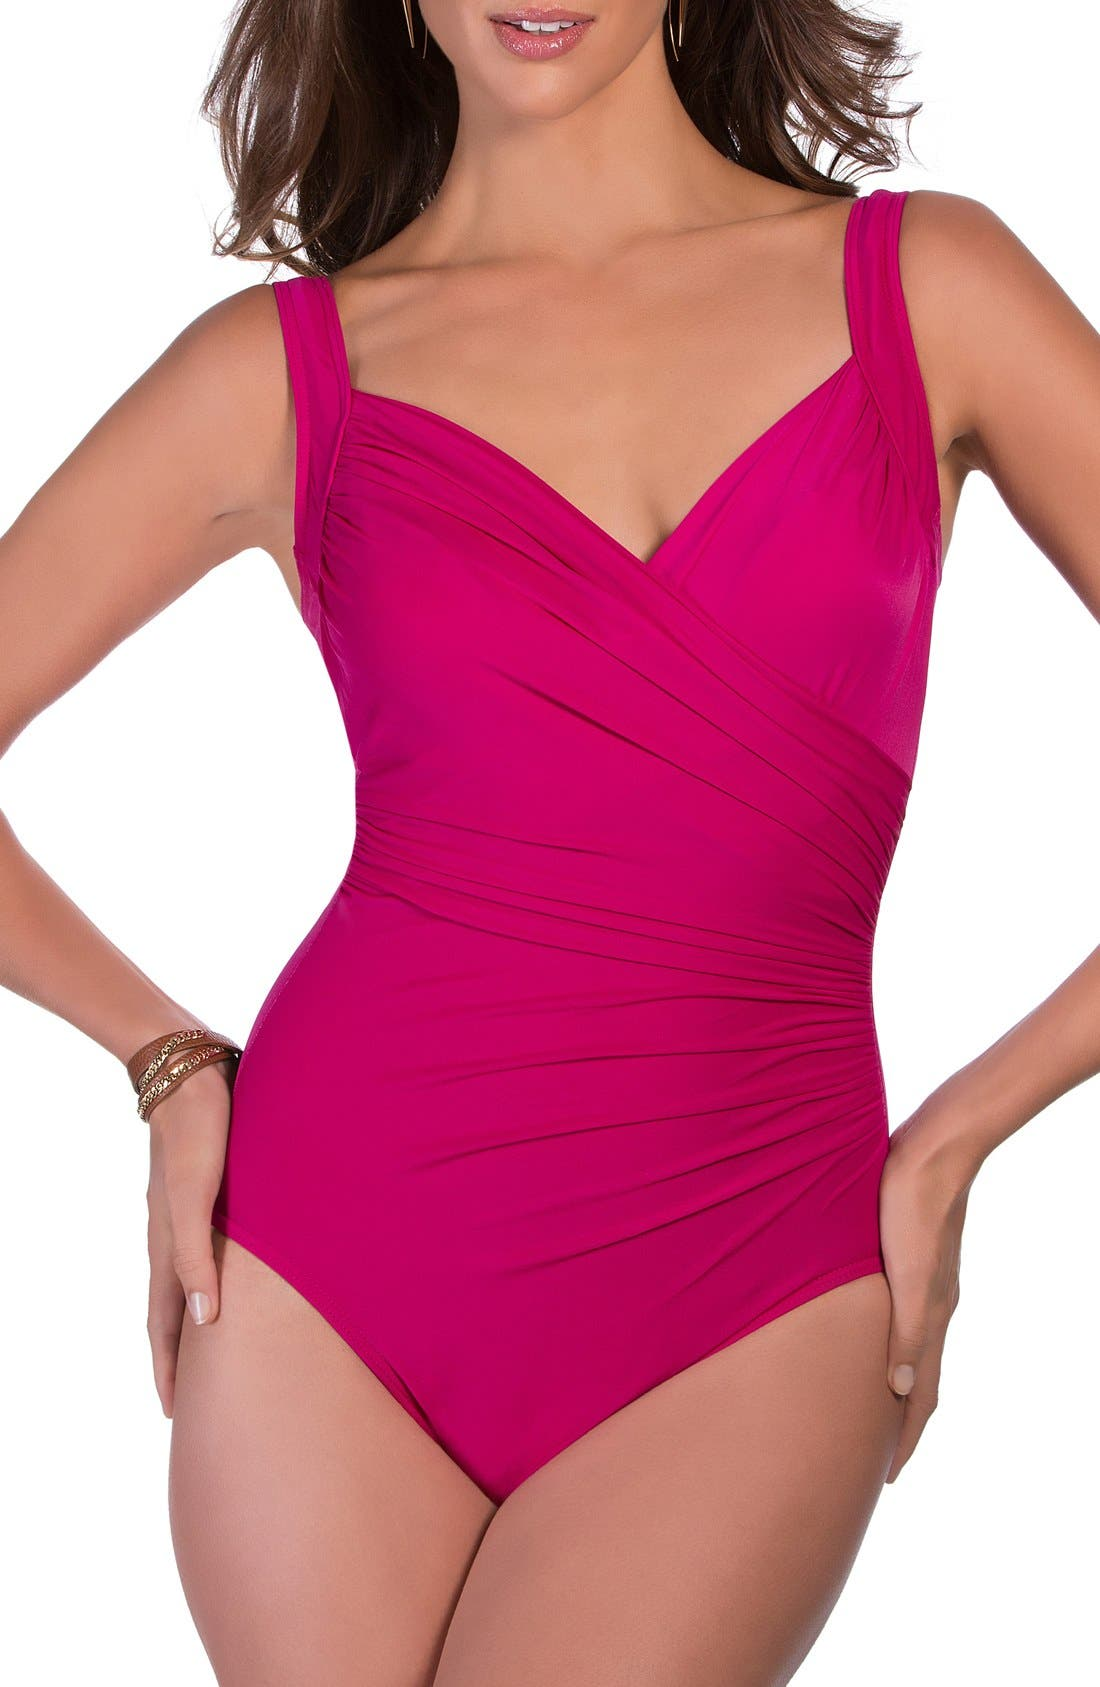 'Sanibel' Underwire One-Piece Swimsuit,                             Main thumbnail 7, color,